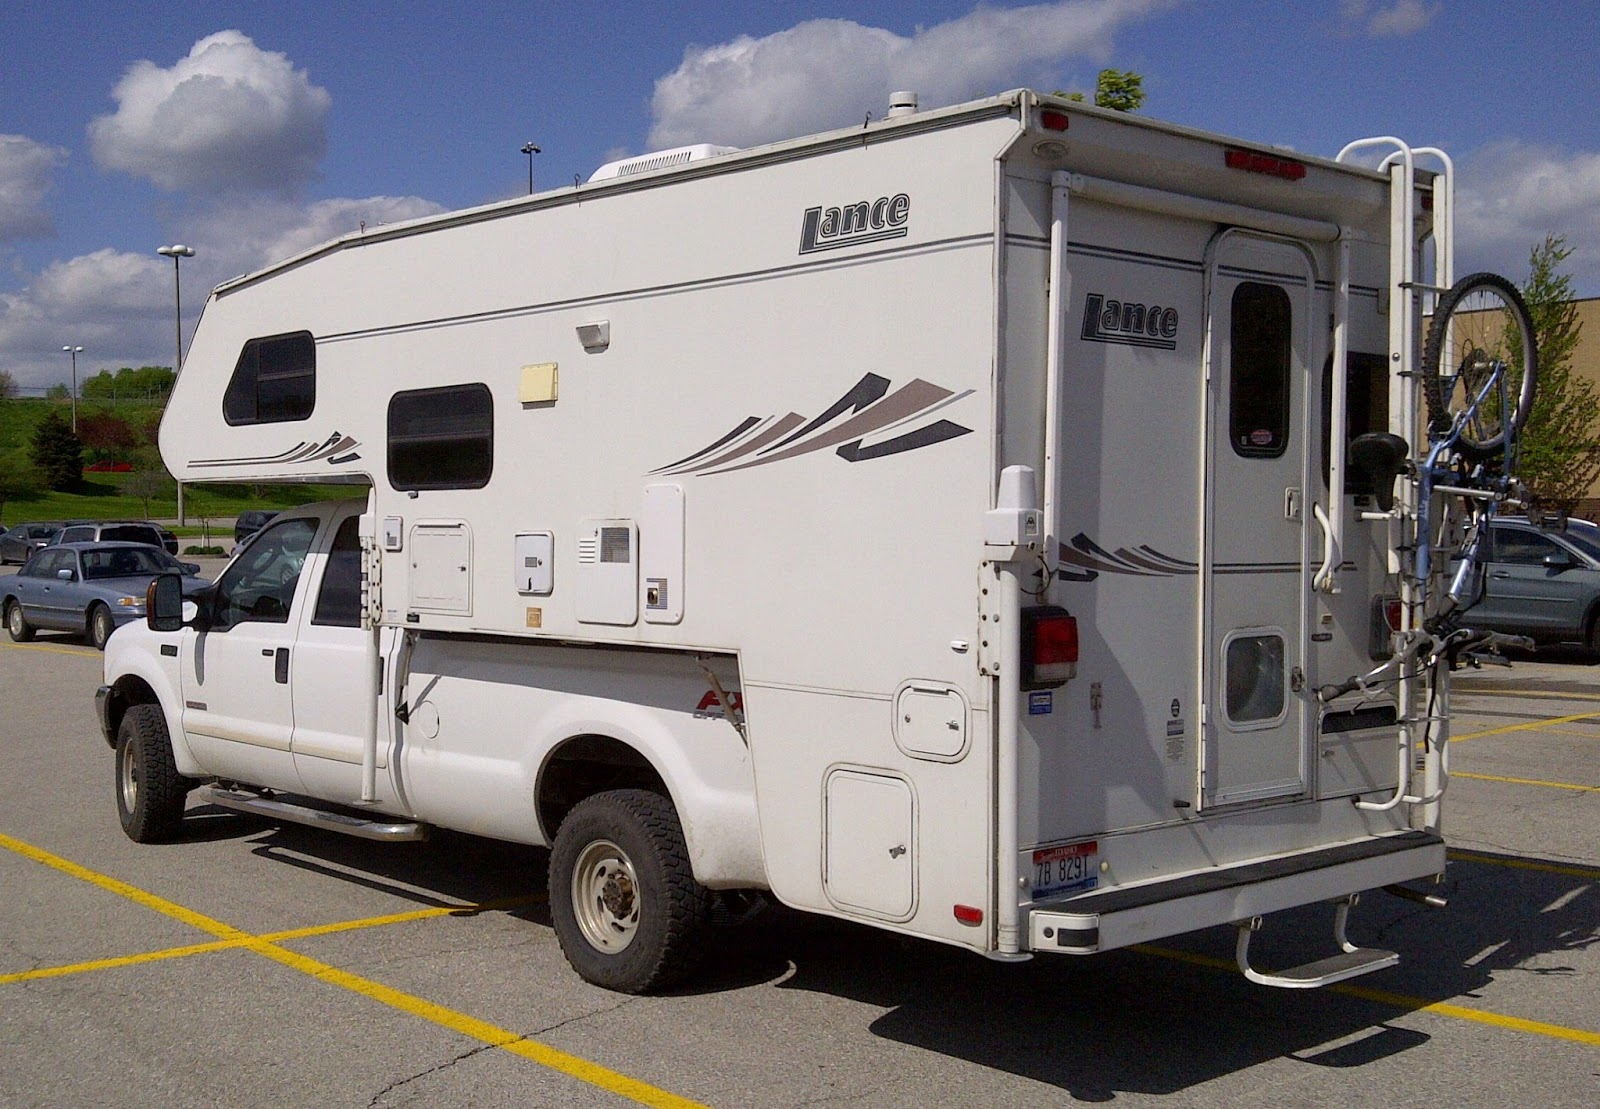 Best Rv Motorhome Or Travel Trailer Penny Pincher Journal